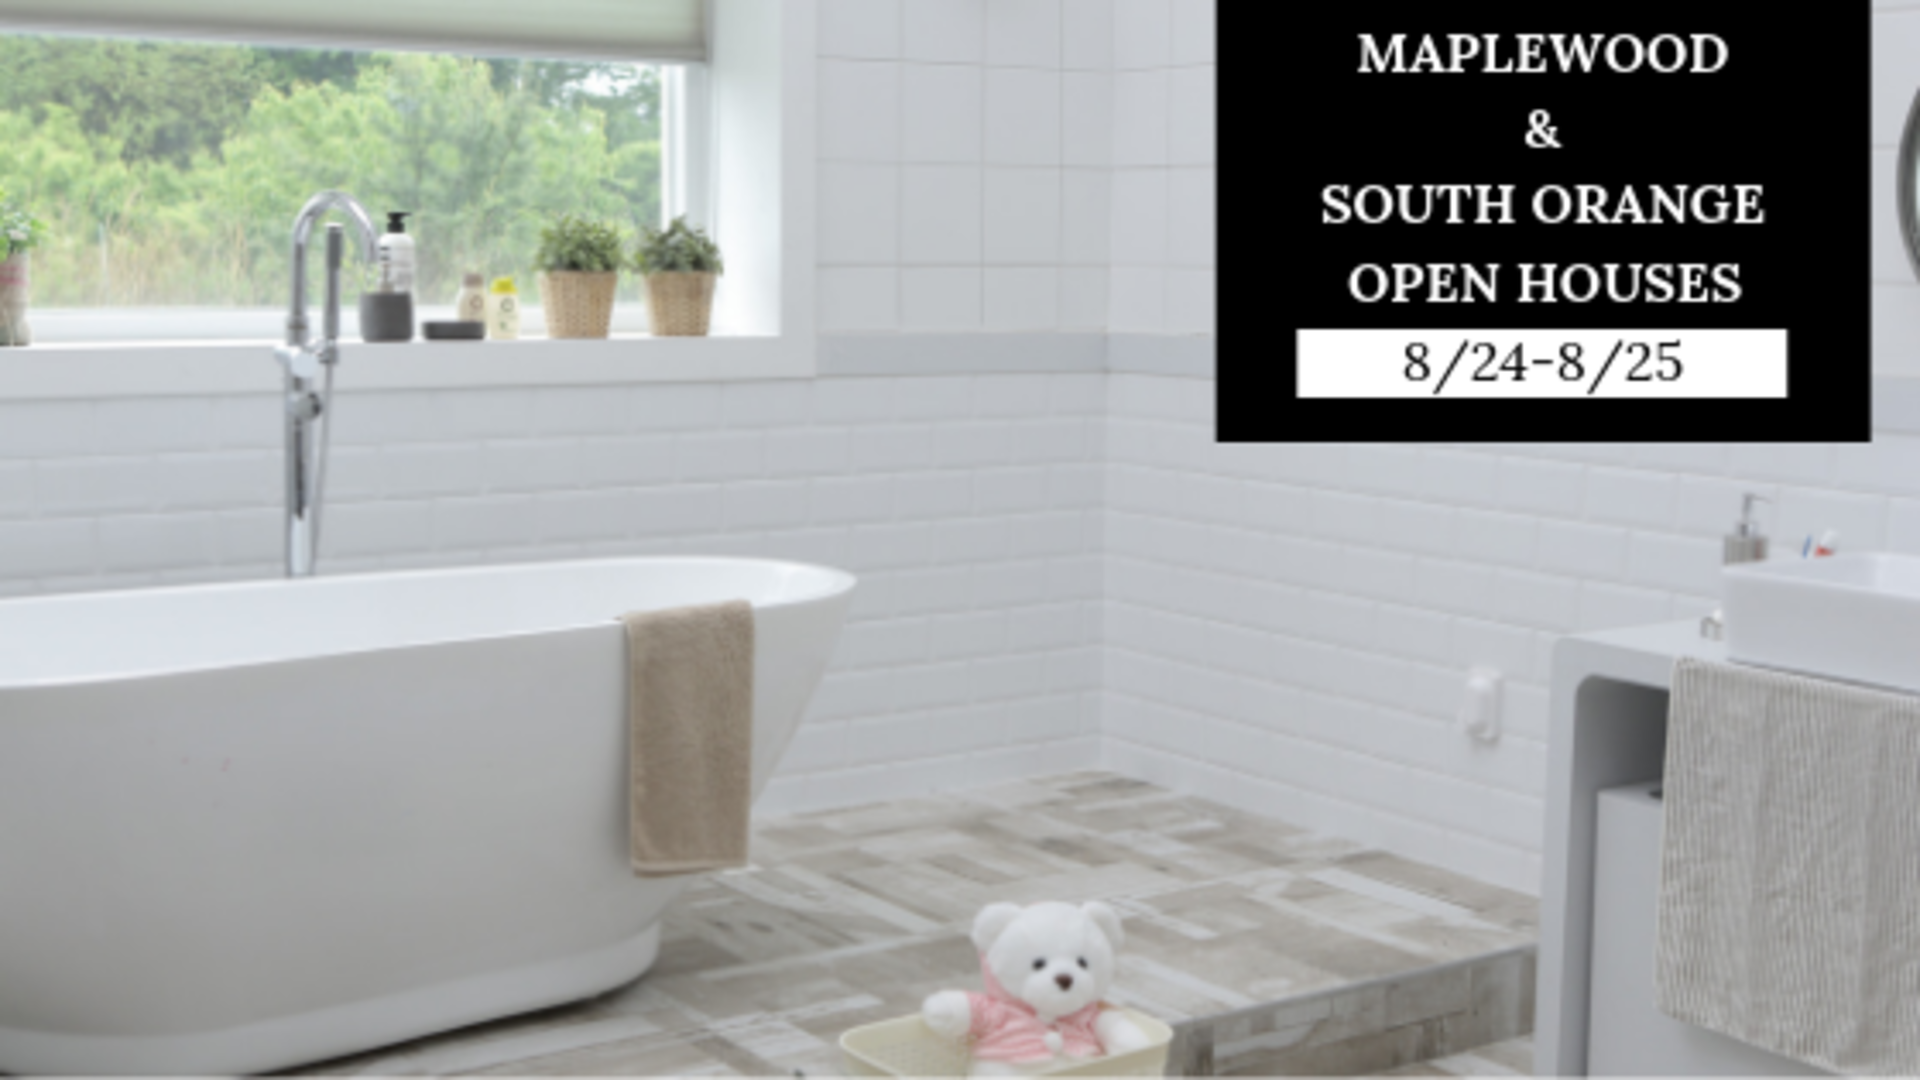 Maplewood & South Orange Open Houses – Sat & Sun, 8/24-8/25